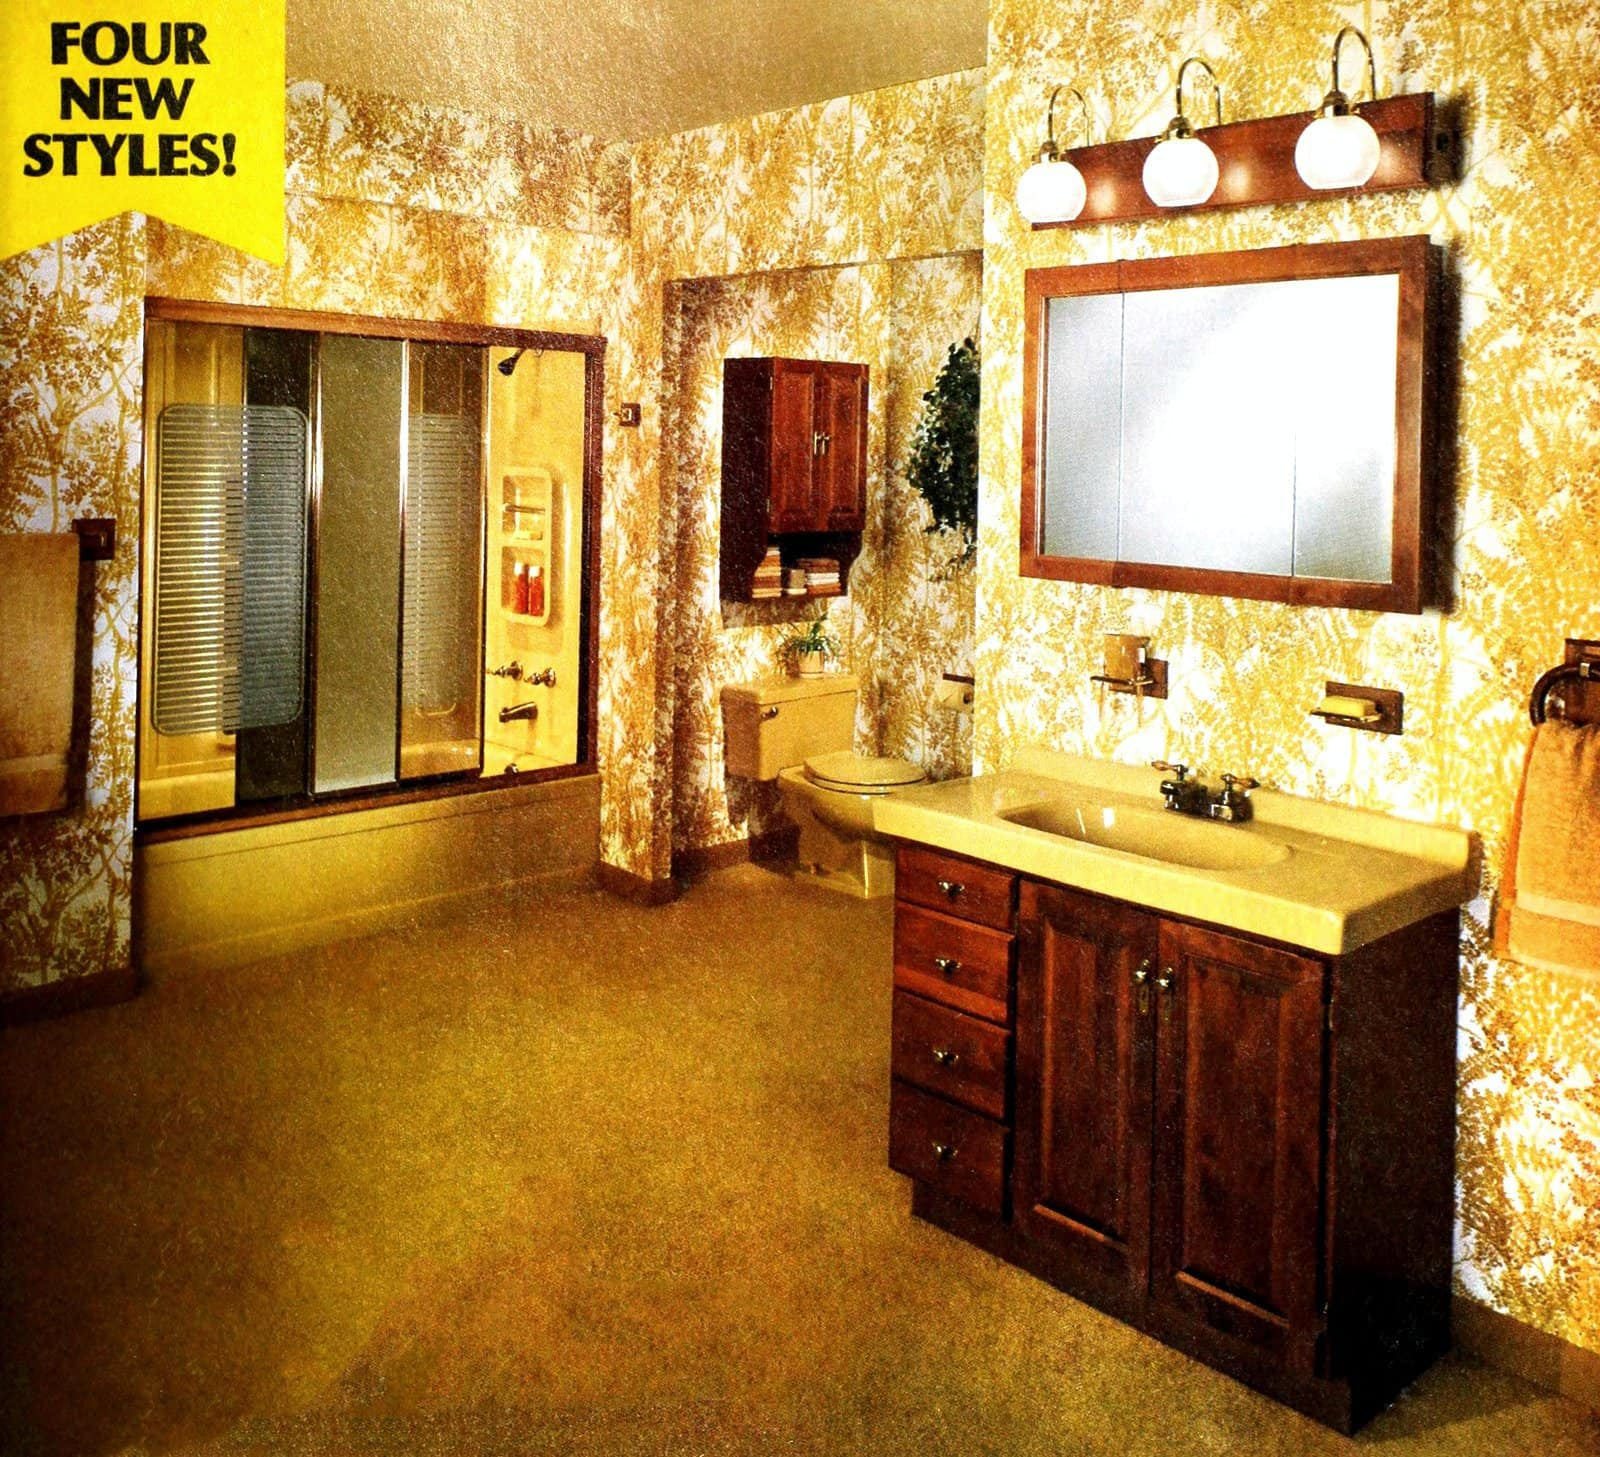 Golden yellow bathroom decor from 1981